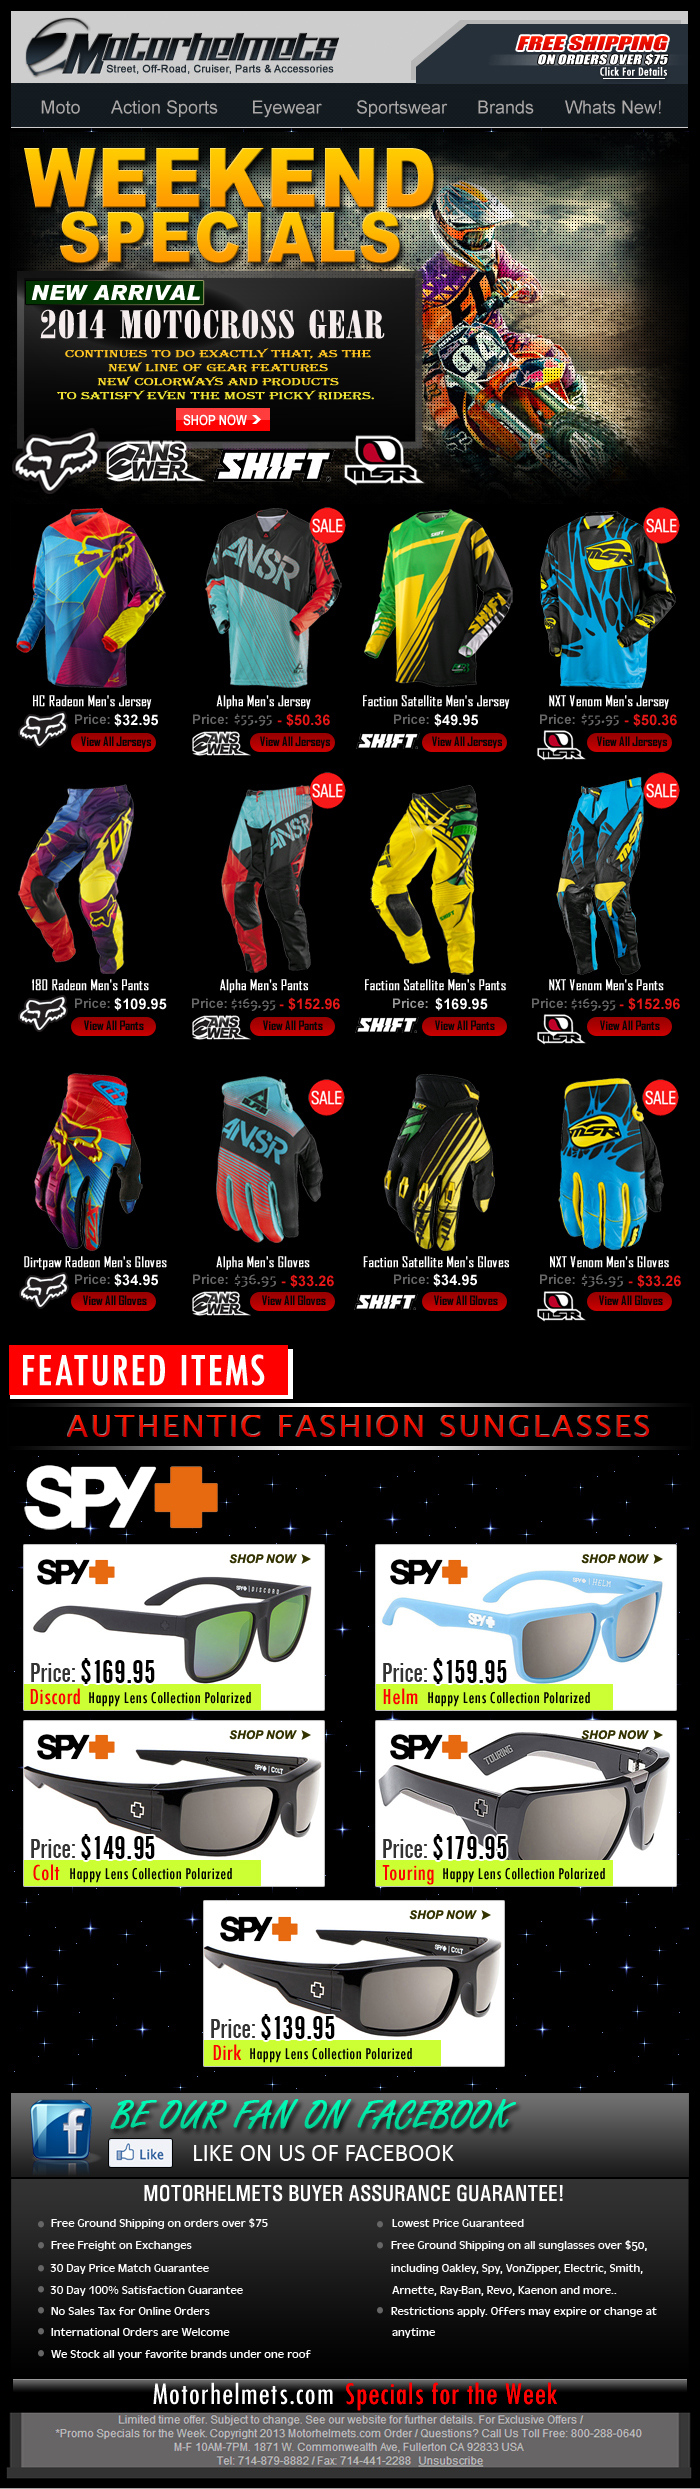 Weekend Specials - More 2014 Gear from FOX, Answer, Shift and MSR!